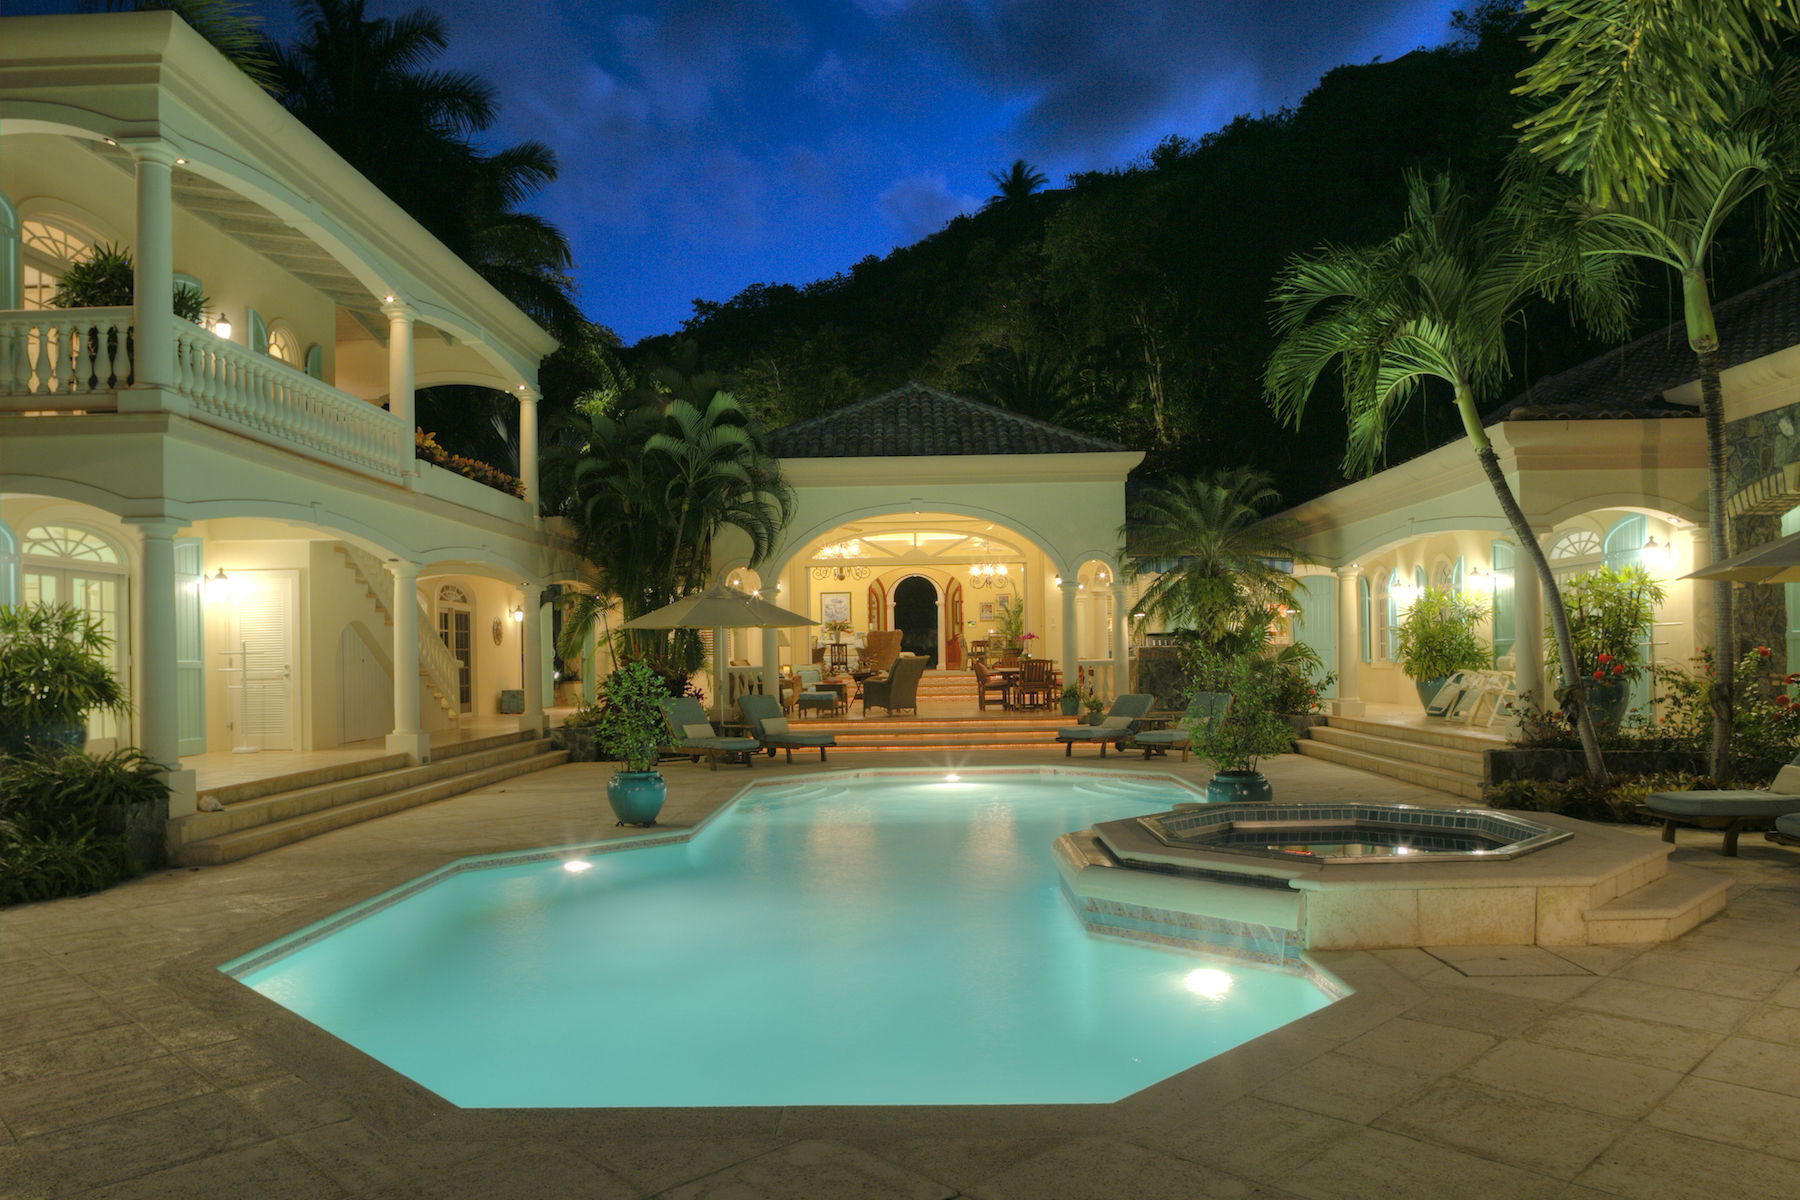 Single Family Home for Sale at 1 Peter Bay 1 Peter Bay St John, Virgin Islands 00830 United States Virgin Islands